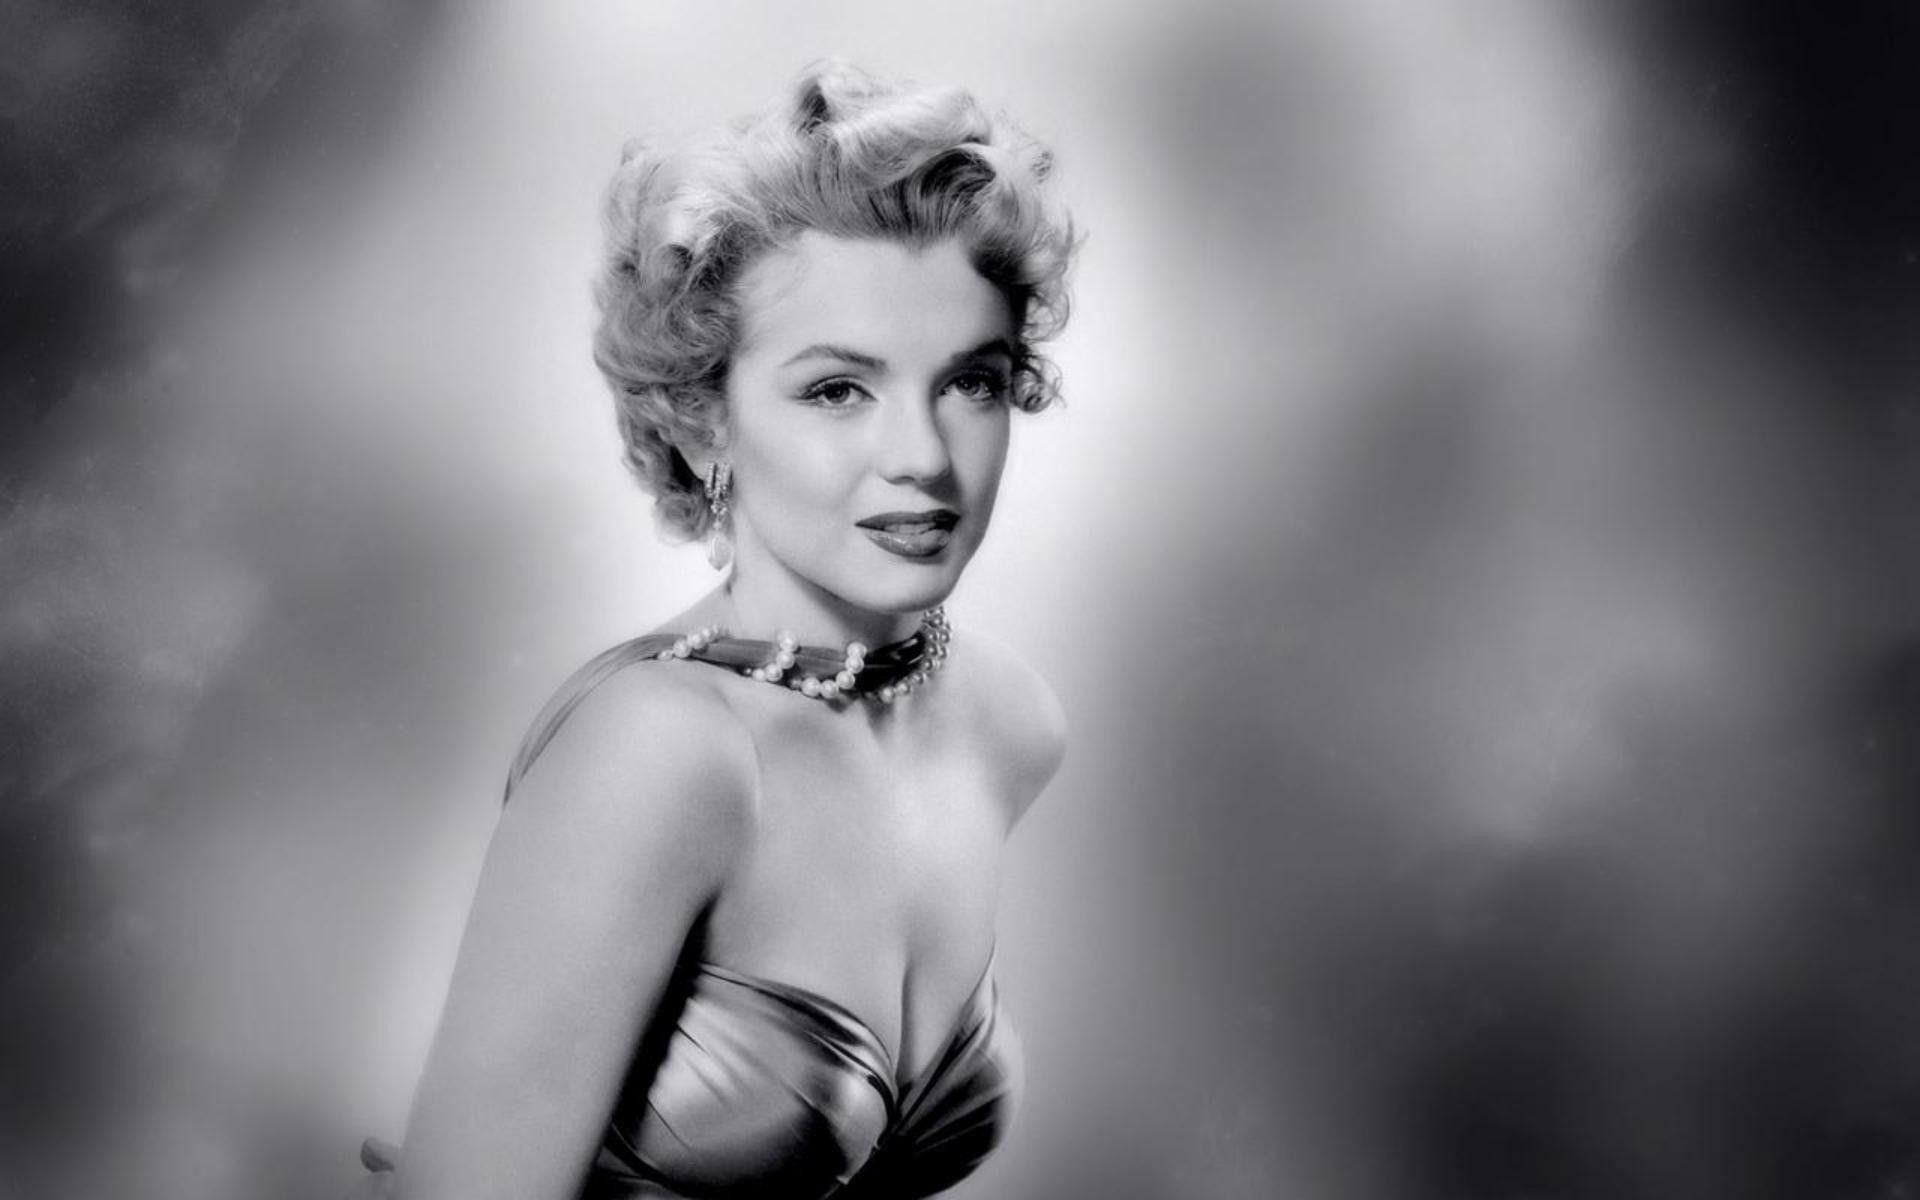 Res: 1920x1200, Top Marilyn Monroe Wallpaper Form Images for Pinterest